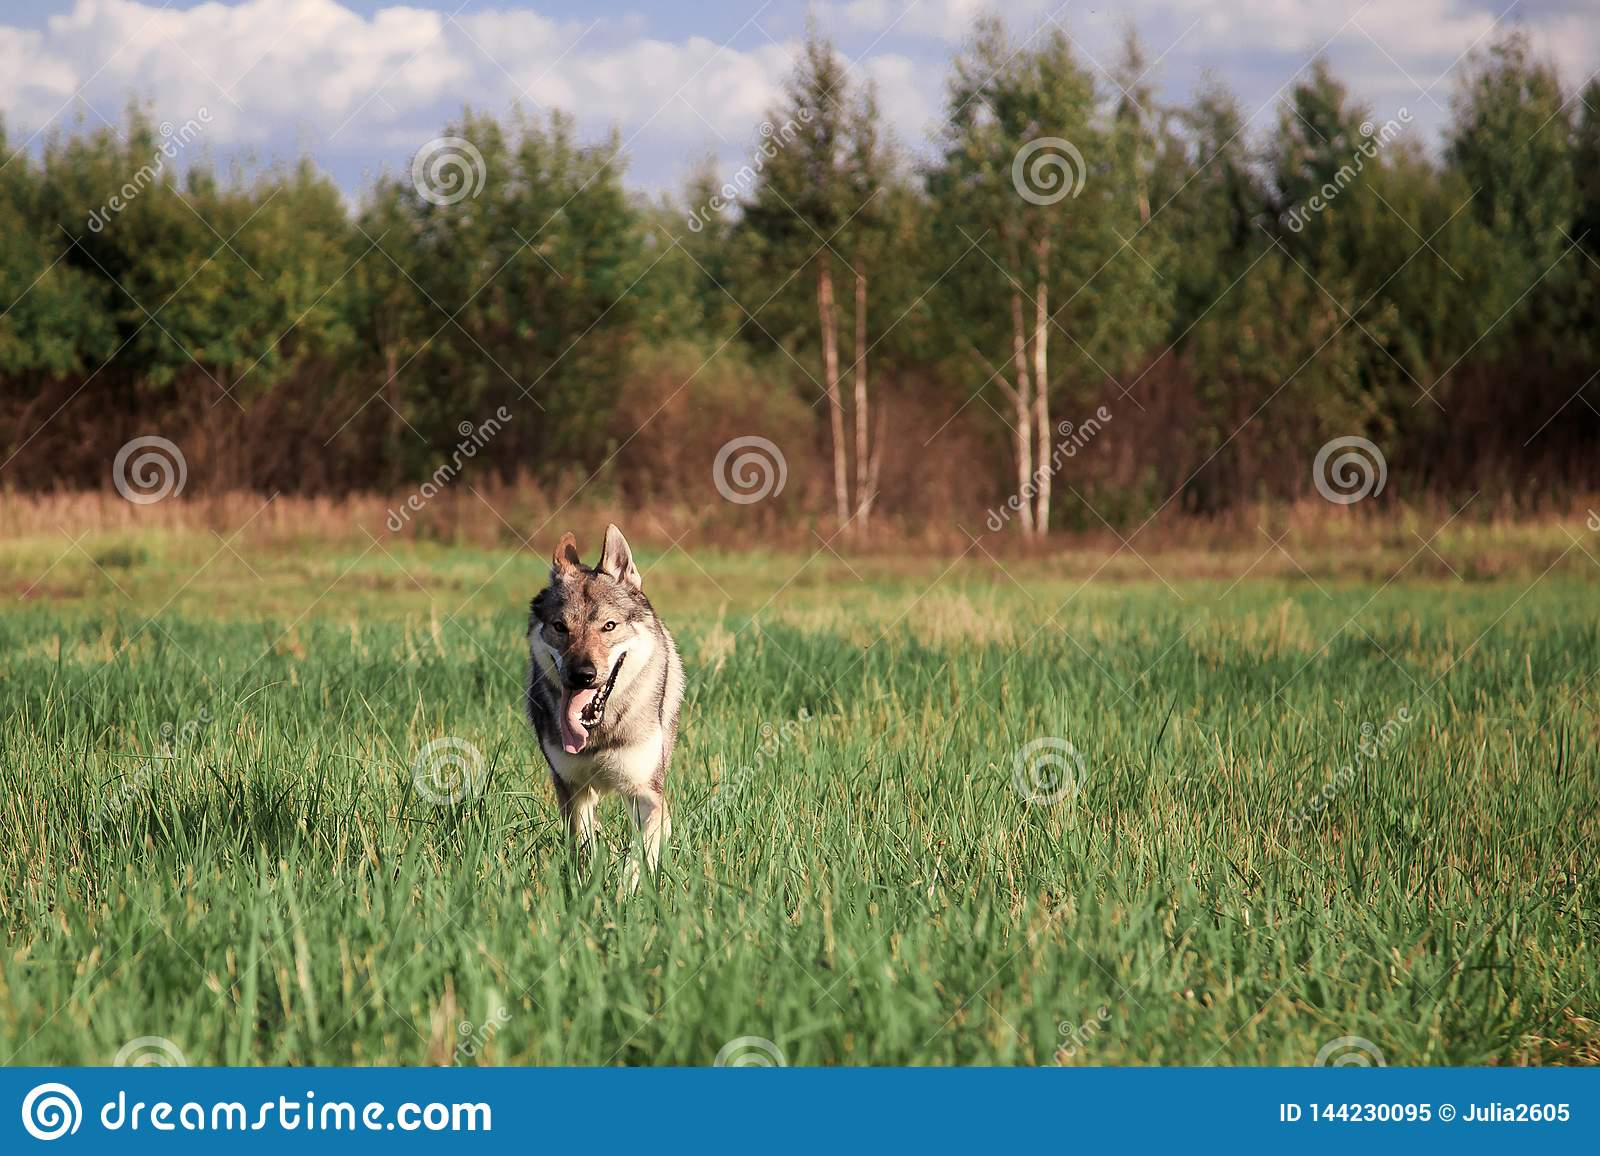 The wolf came out of the woods. Wolf runs across the field.